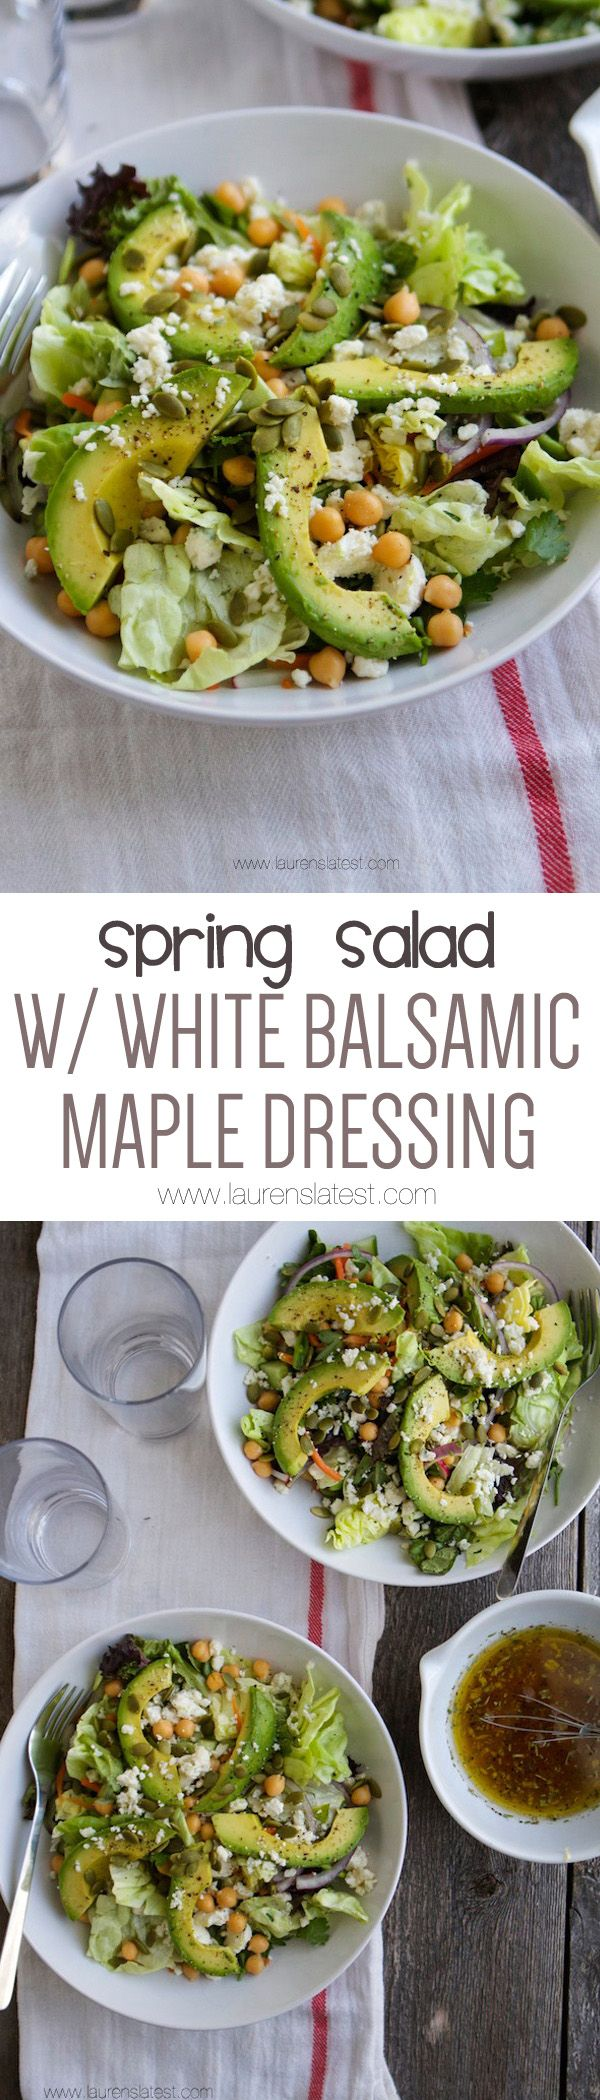 Ultimate Spring Salad with White Balsamic Maple Dressing